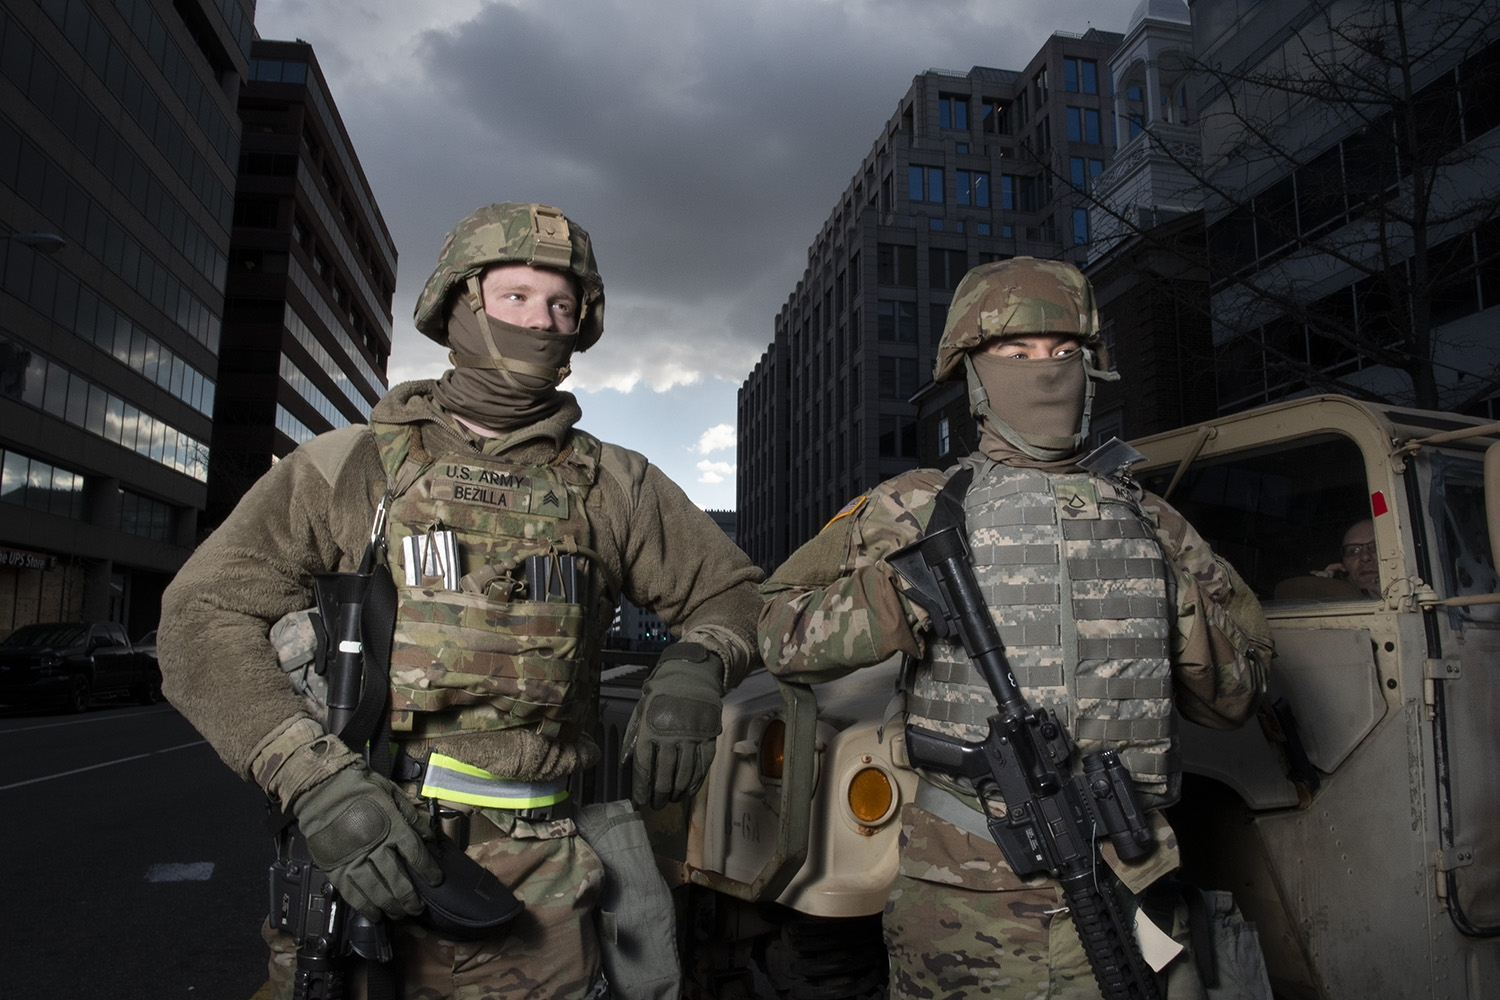 Two tropps wearing military fatigues and long, black guns stand in front of a tan military vehicle in downtown D.C.